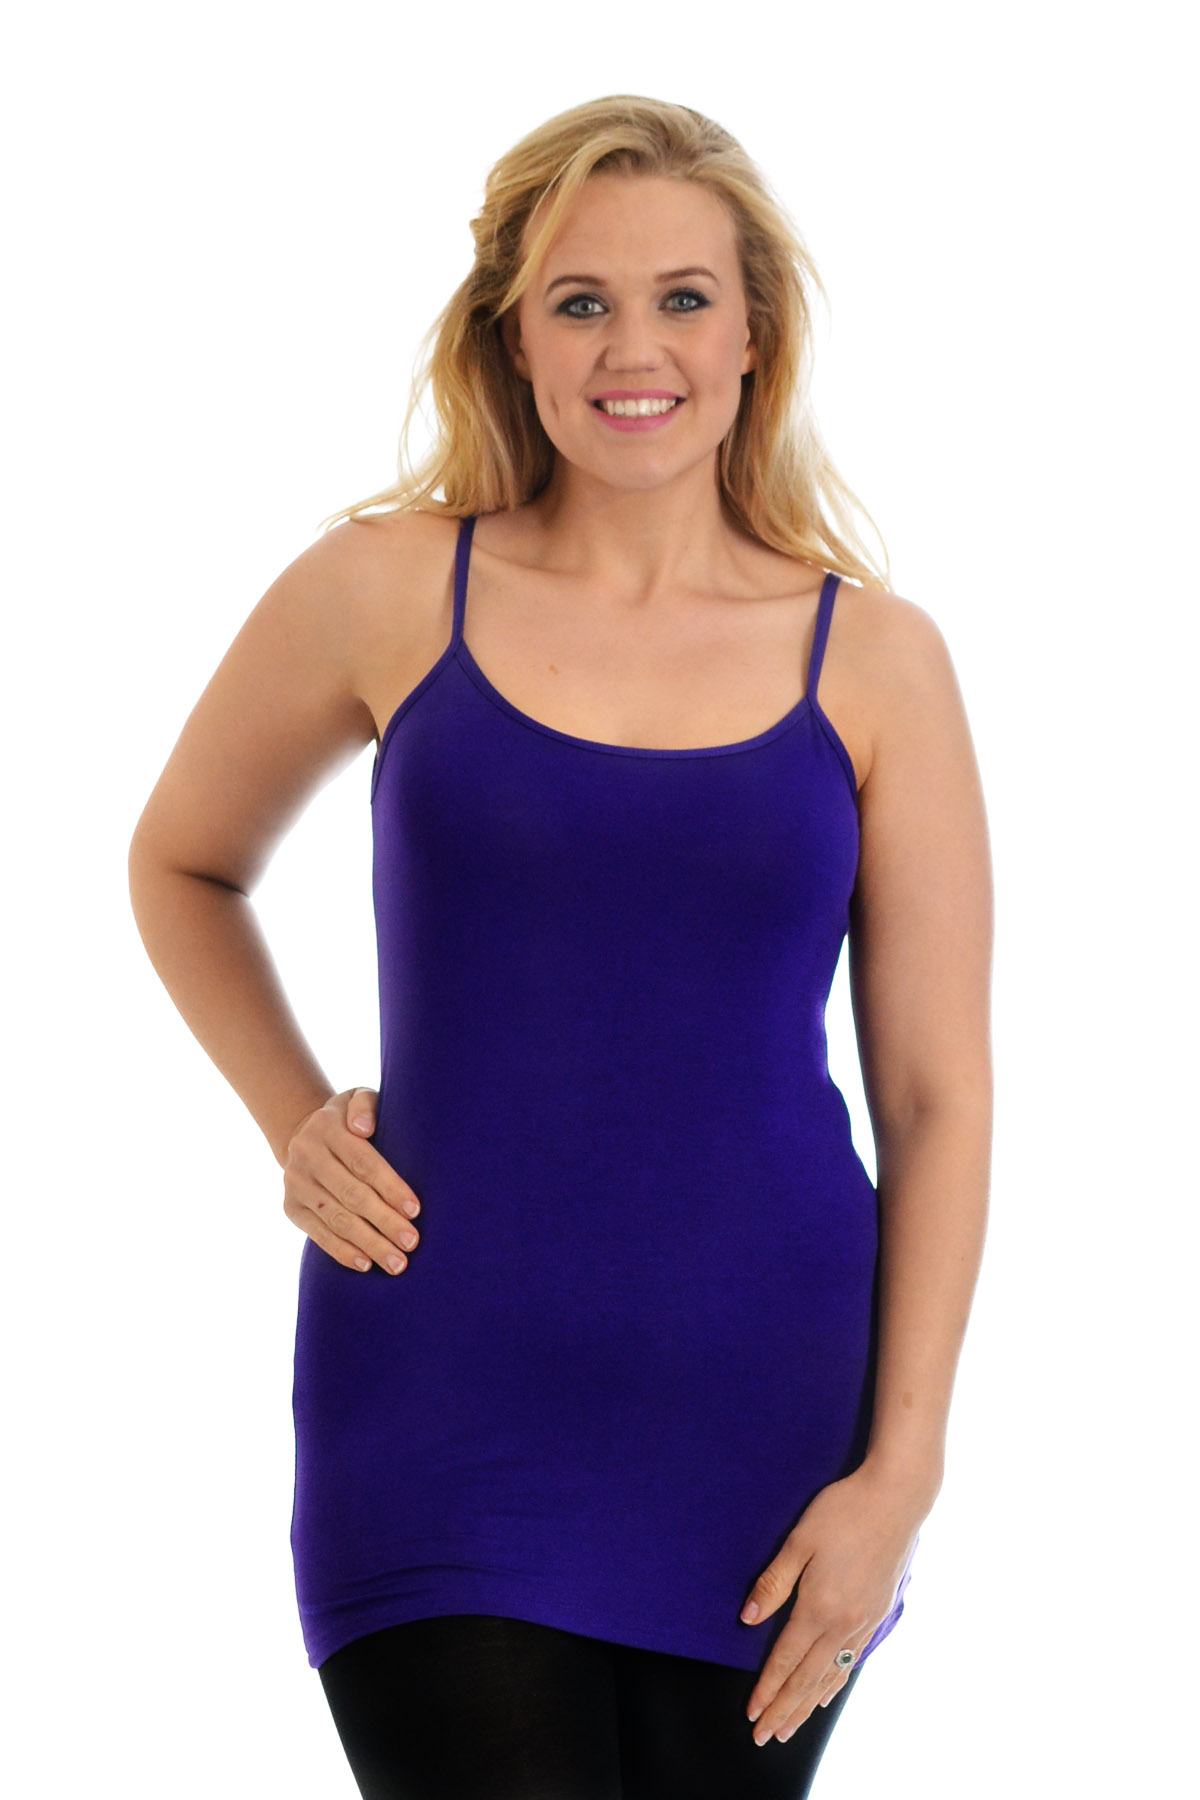 Shop a plethora of lace tank tops at JCPenney: racerback, scoop neck, v-neck and more. Show off all that hardwork and sweat you've put in at the gym in a cropped tank top. Wear a cute pair of jean shorts for a flirty casual look, or wear formal shorts for a sexy dressy look.